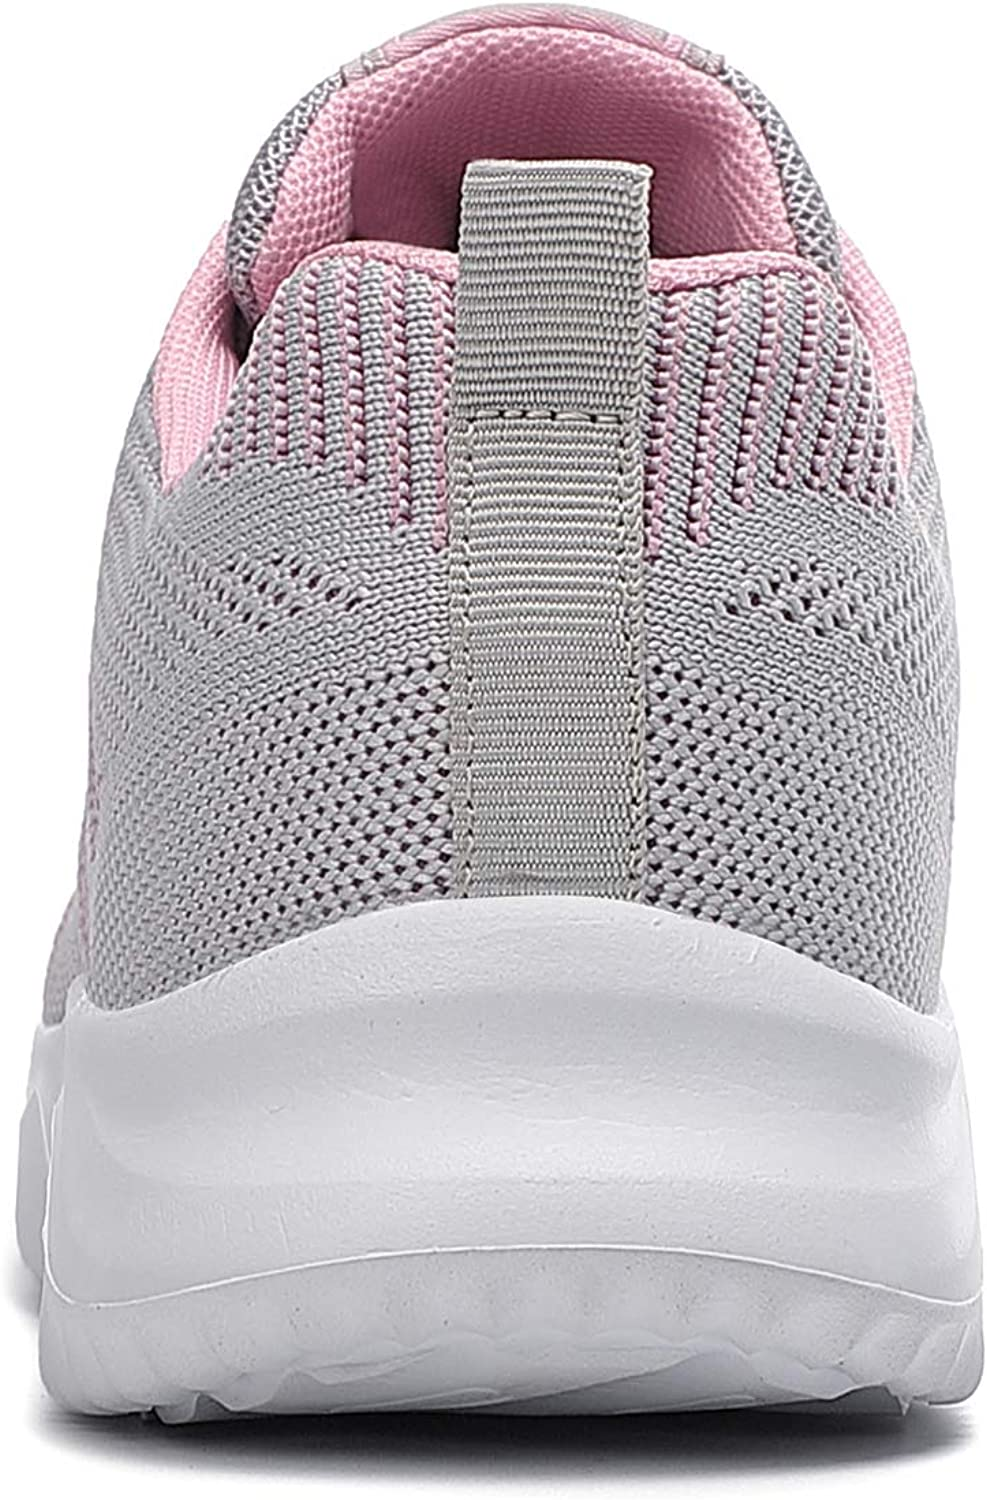 TAIZHOU Femme Chaussures de Sport Lacets Fitness Confortable Basses Basquettes Chaussure Running Grayish Pink